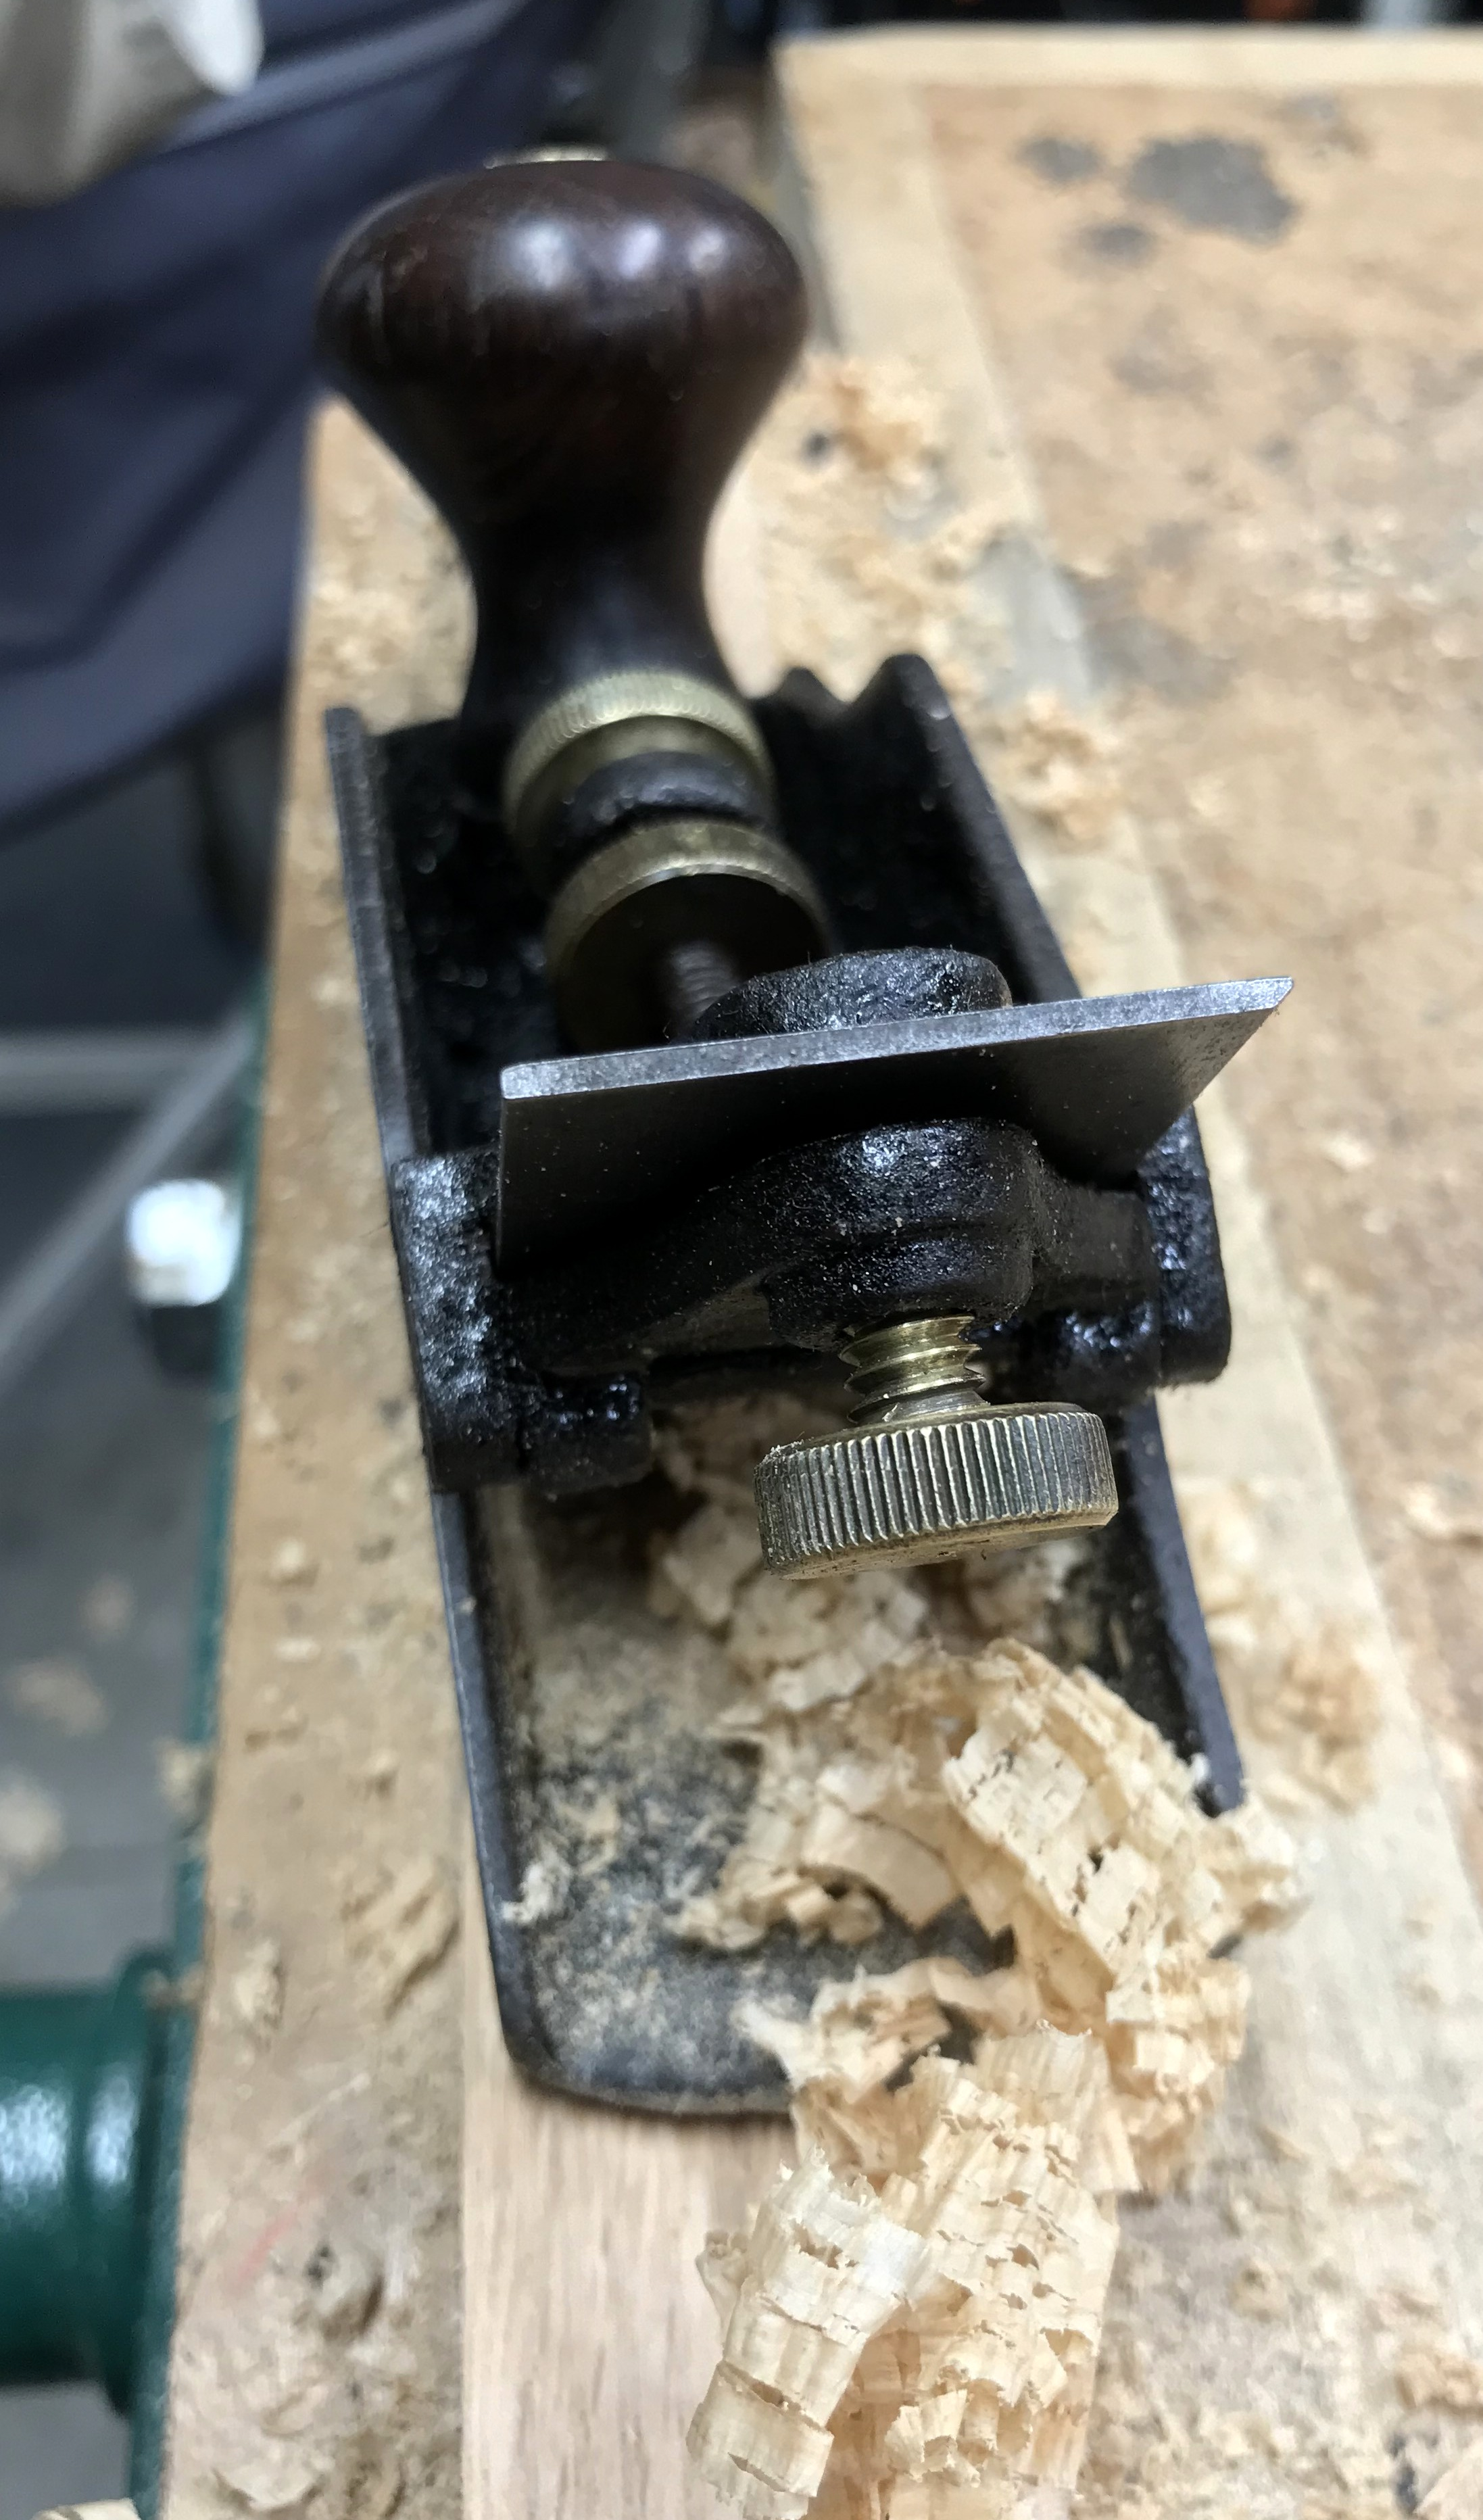 Replacement blade works